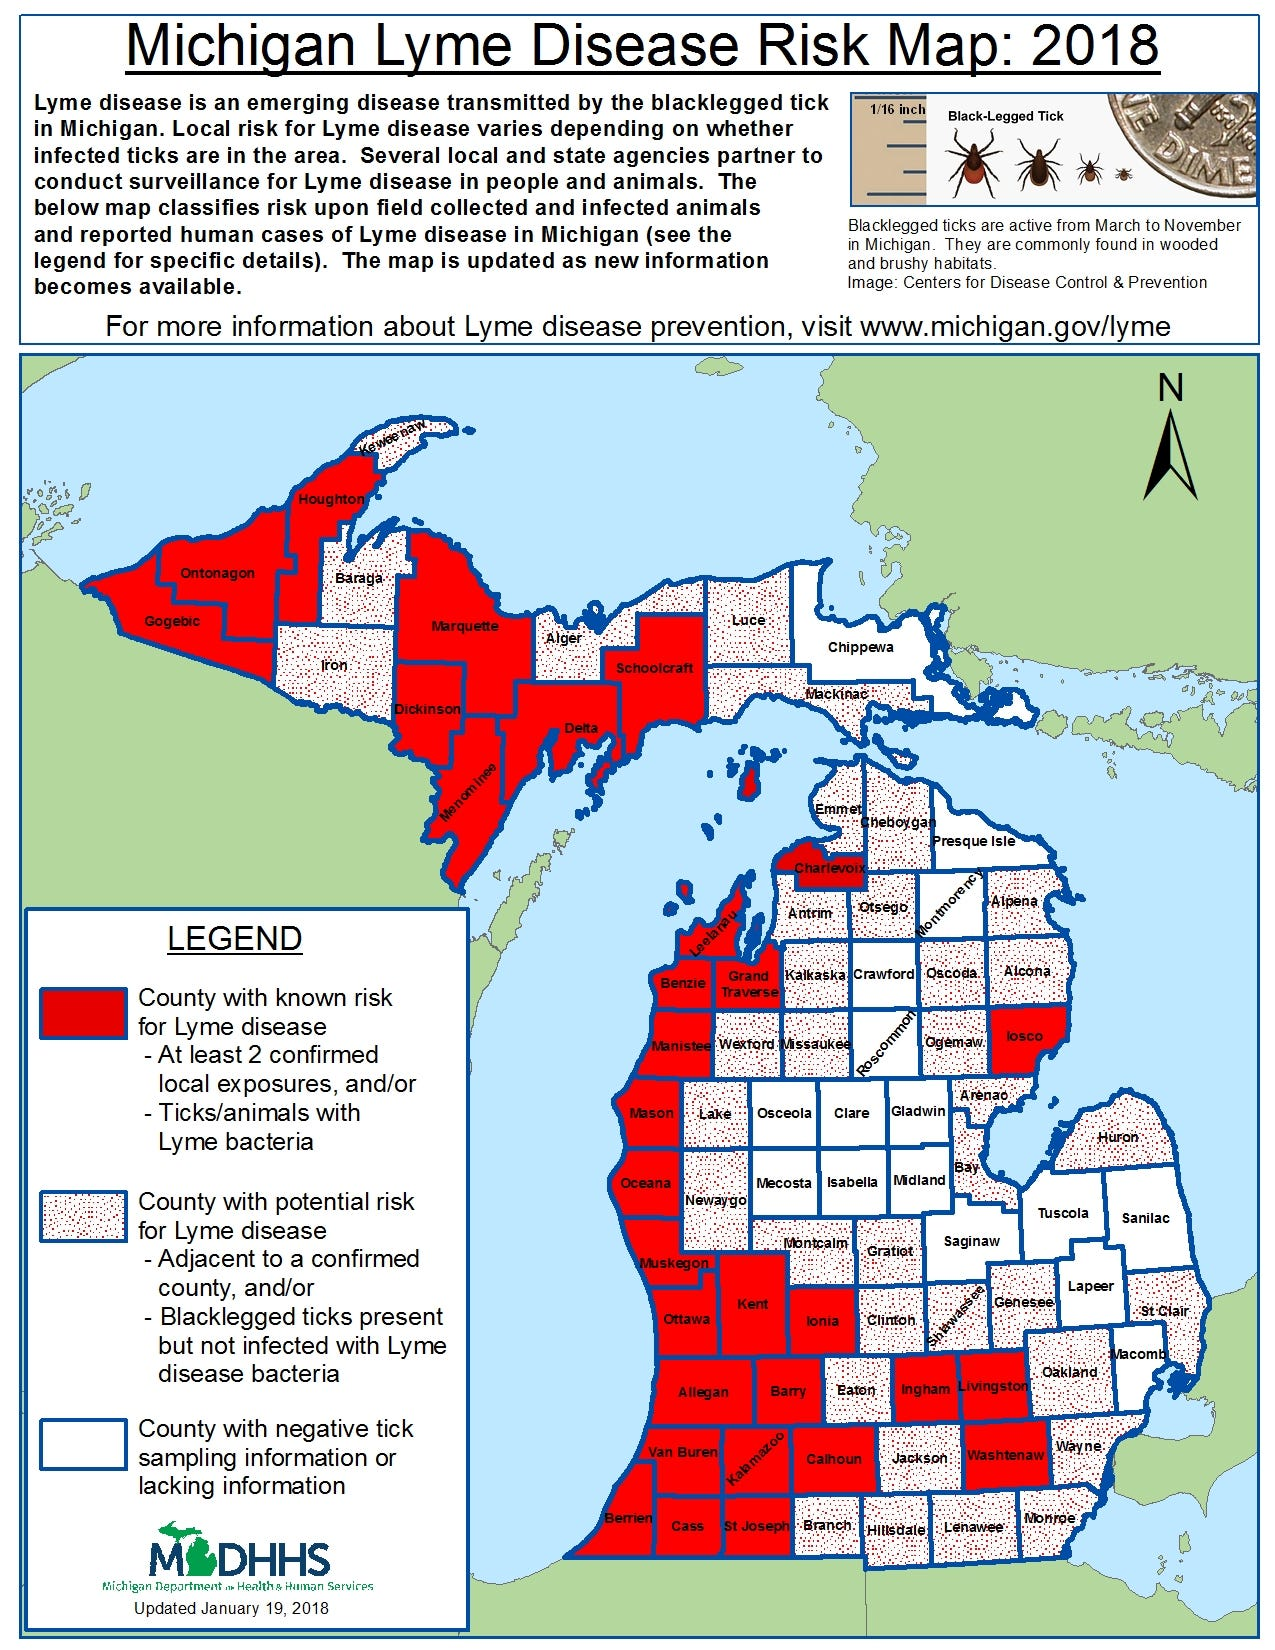 Lyme disease in Michigan: Map shows areas most at risk